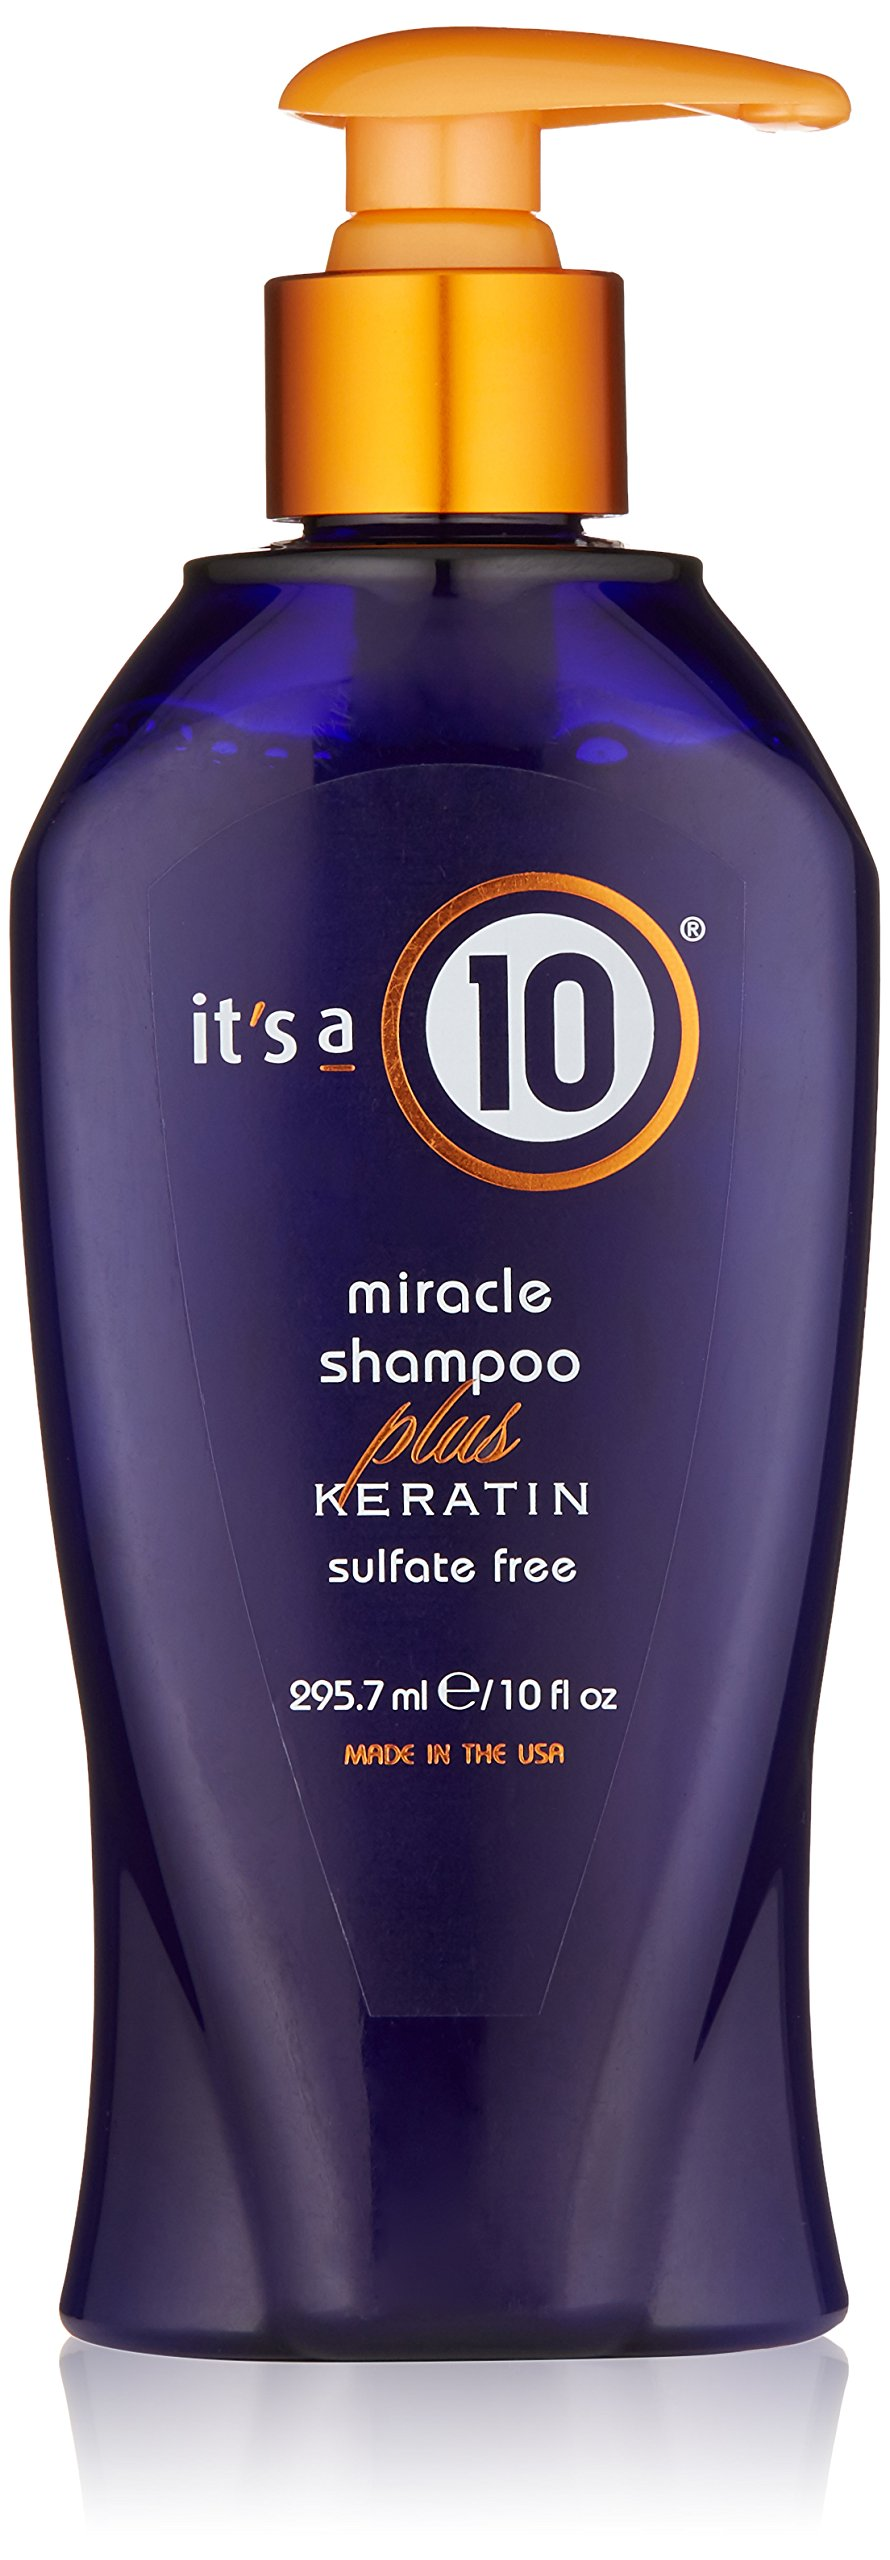 it's a 10 Miracle Shampoo plus Keratin 10 oz